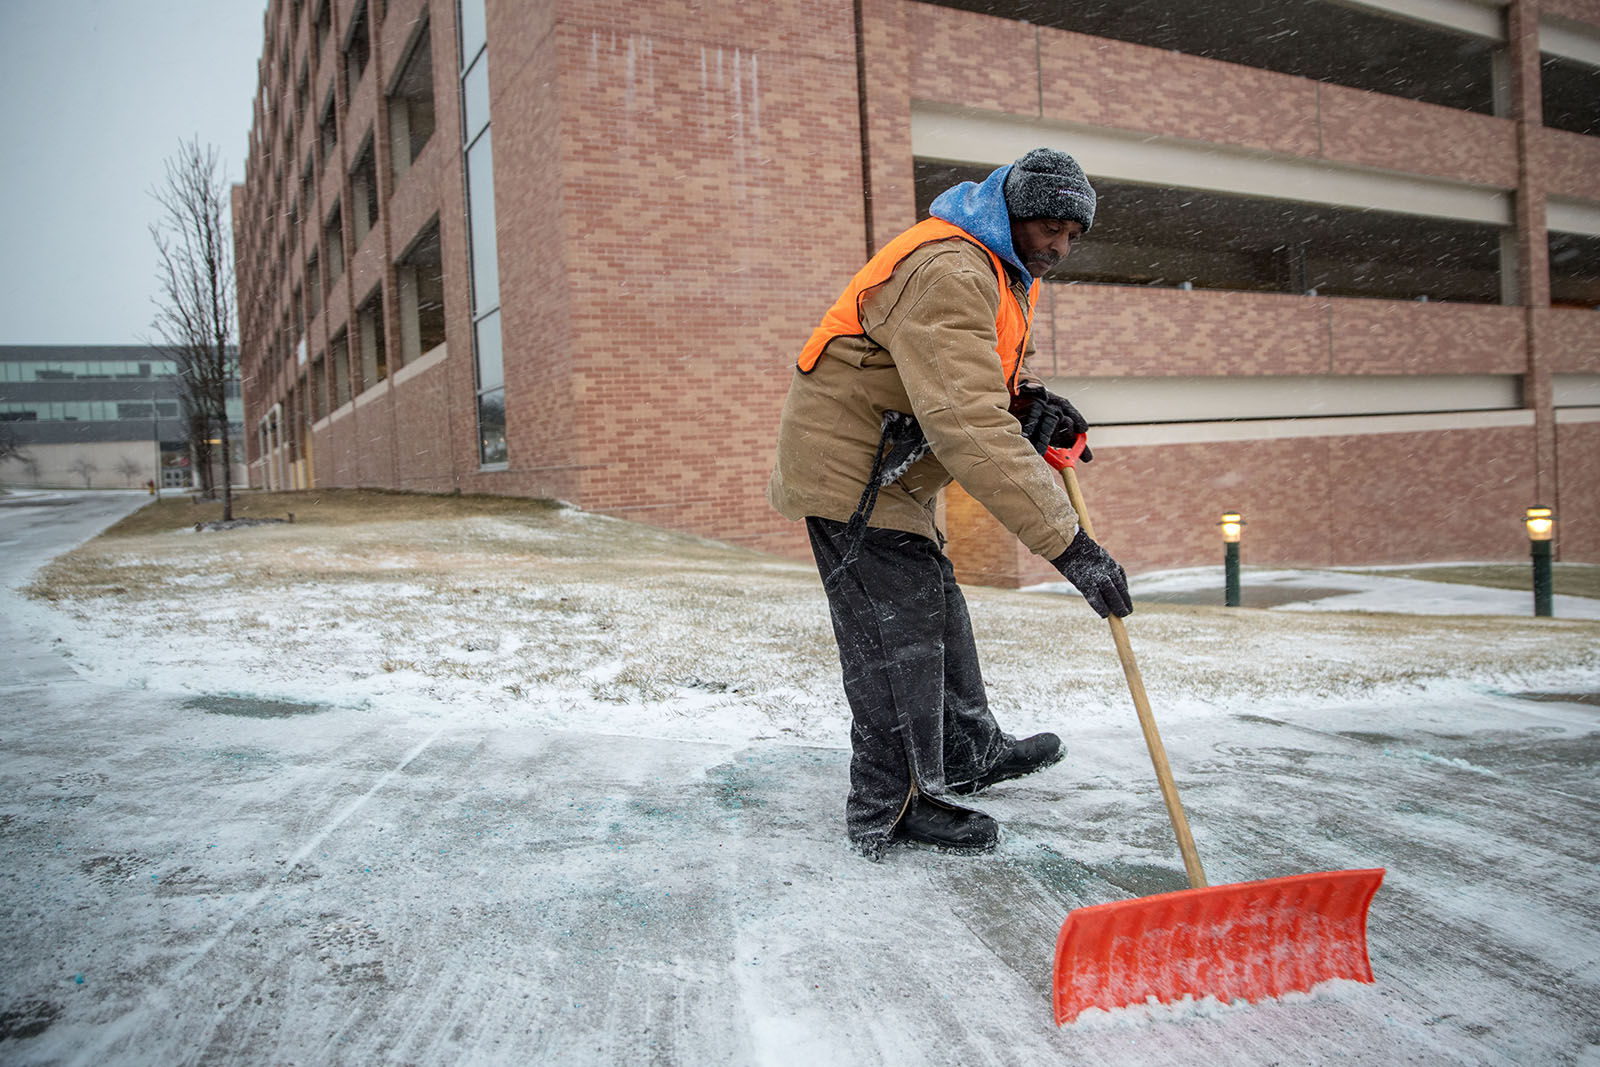 Roads improving in Omaha area but use